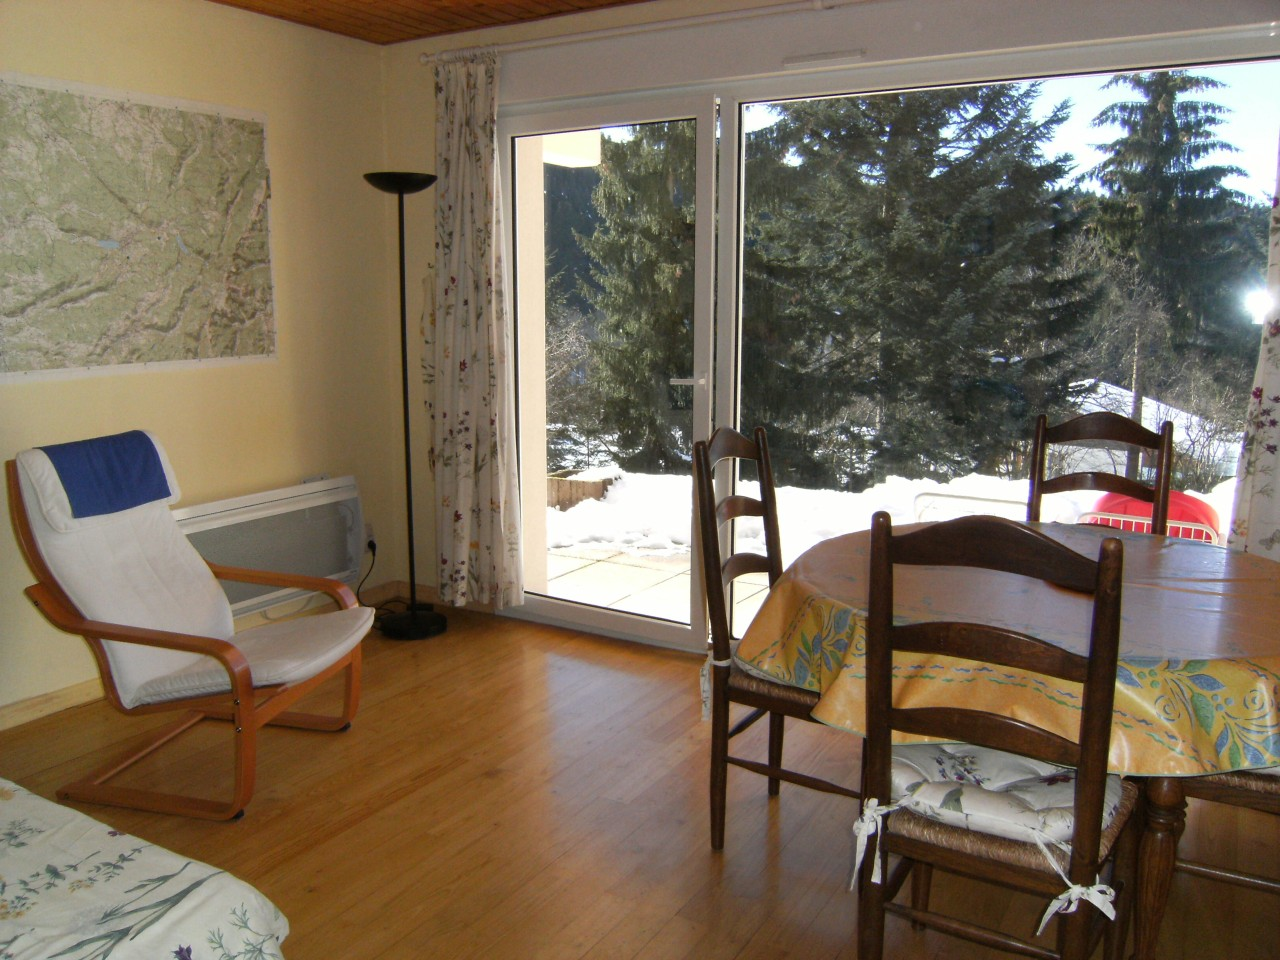 Agence immobili re g rardmer annonce appartements n 2325 for Agence immobiliere gerardmer